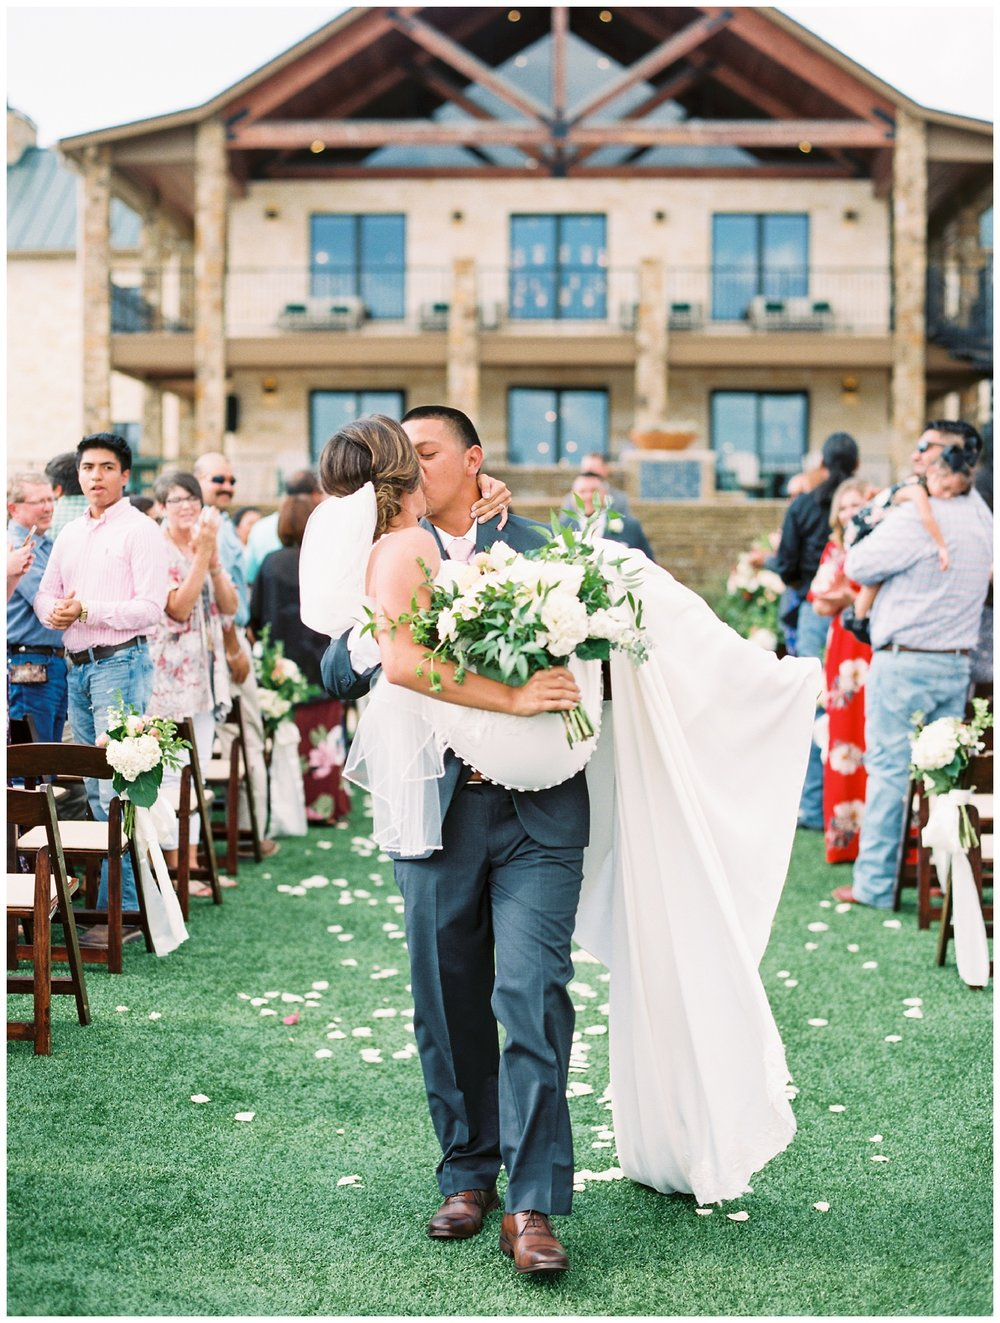 Hill Country Wedding Austin Texas Wedding Photographer_0047.jpg